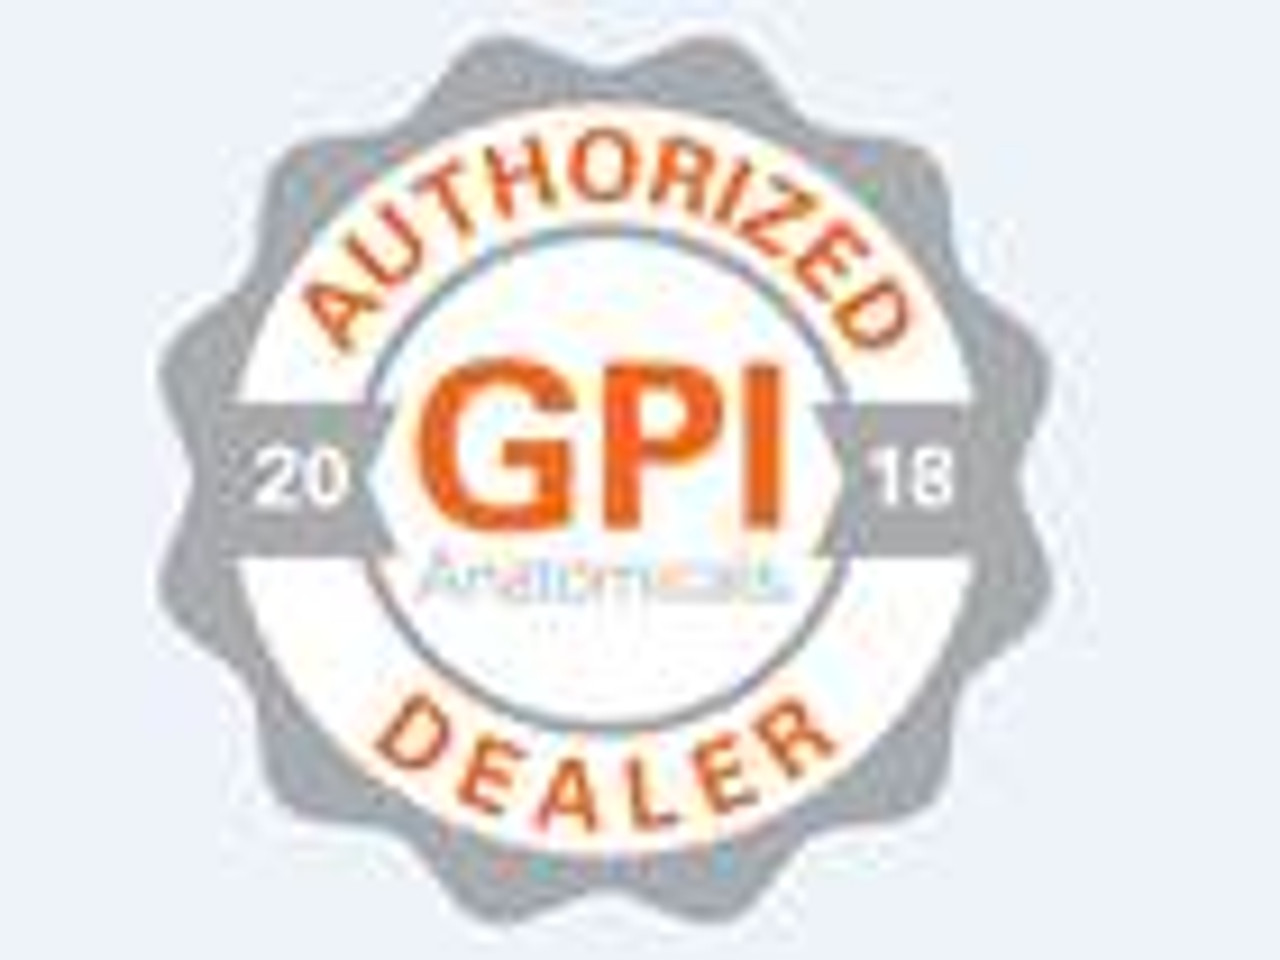 Authorized GPI dealer